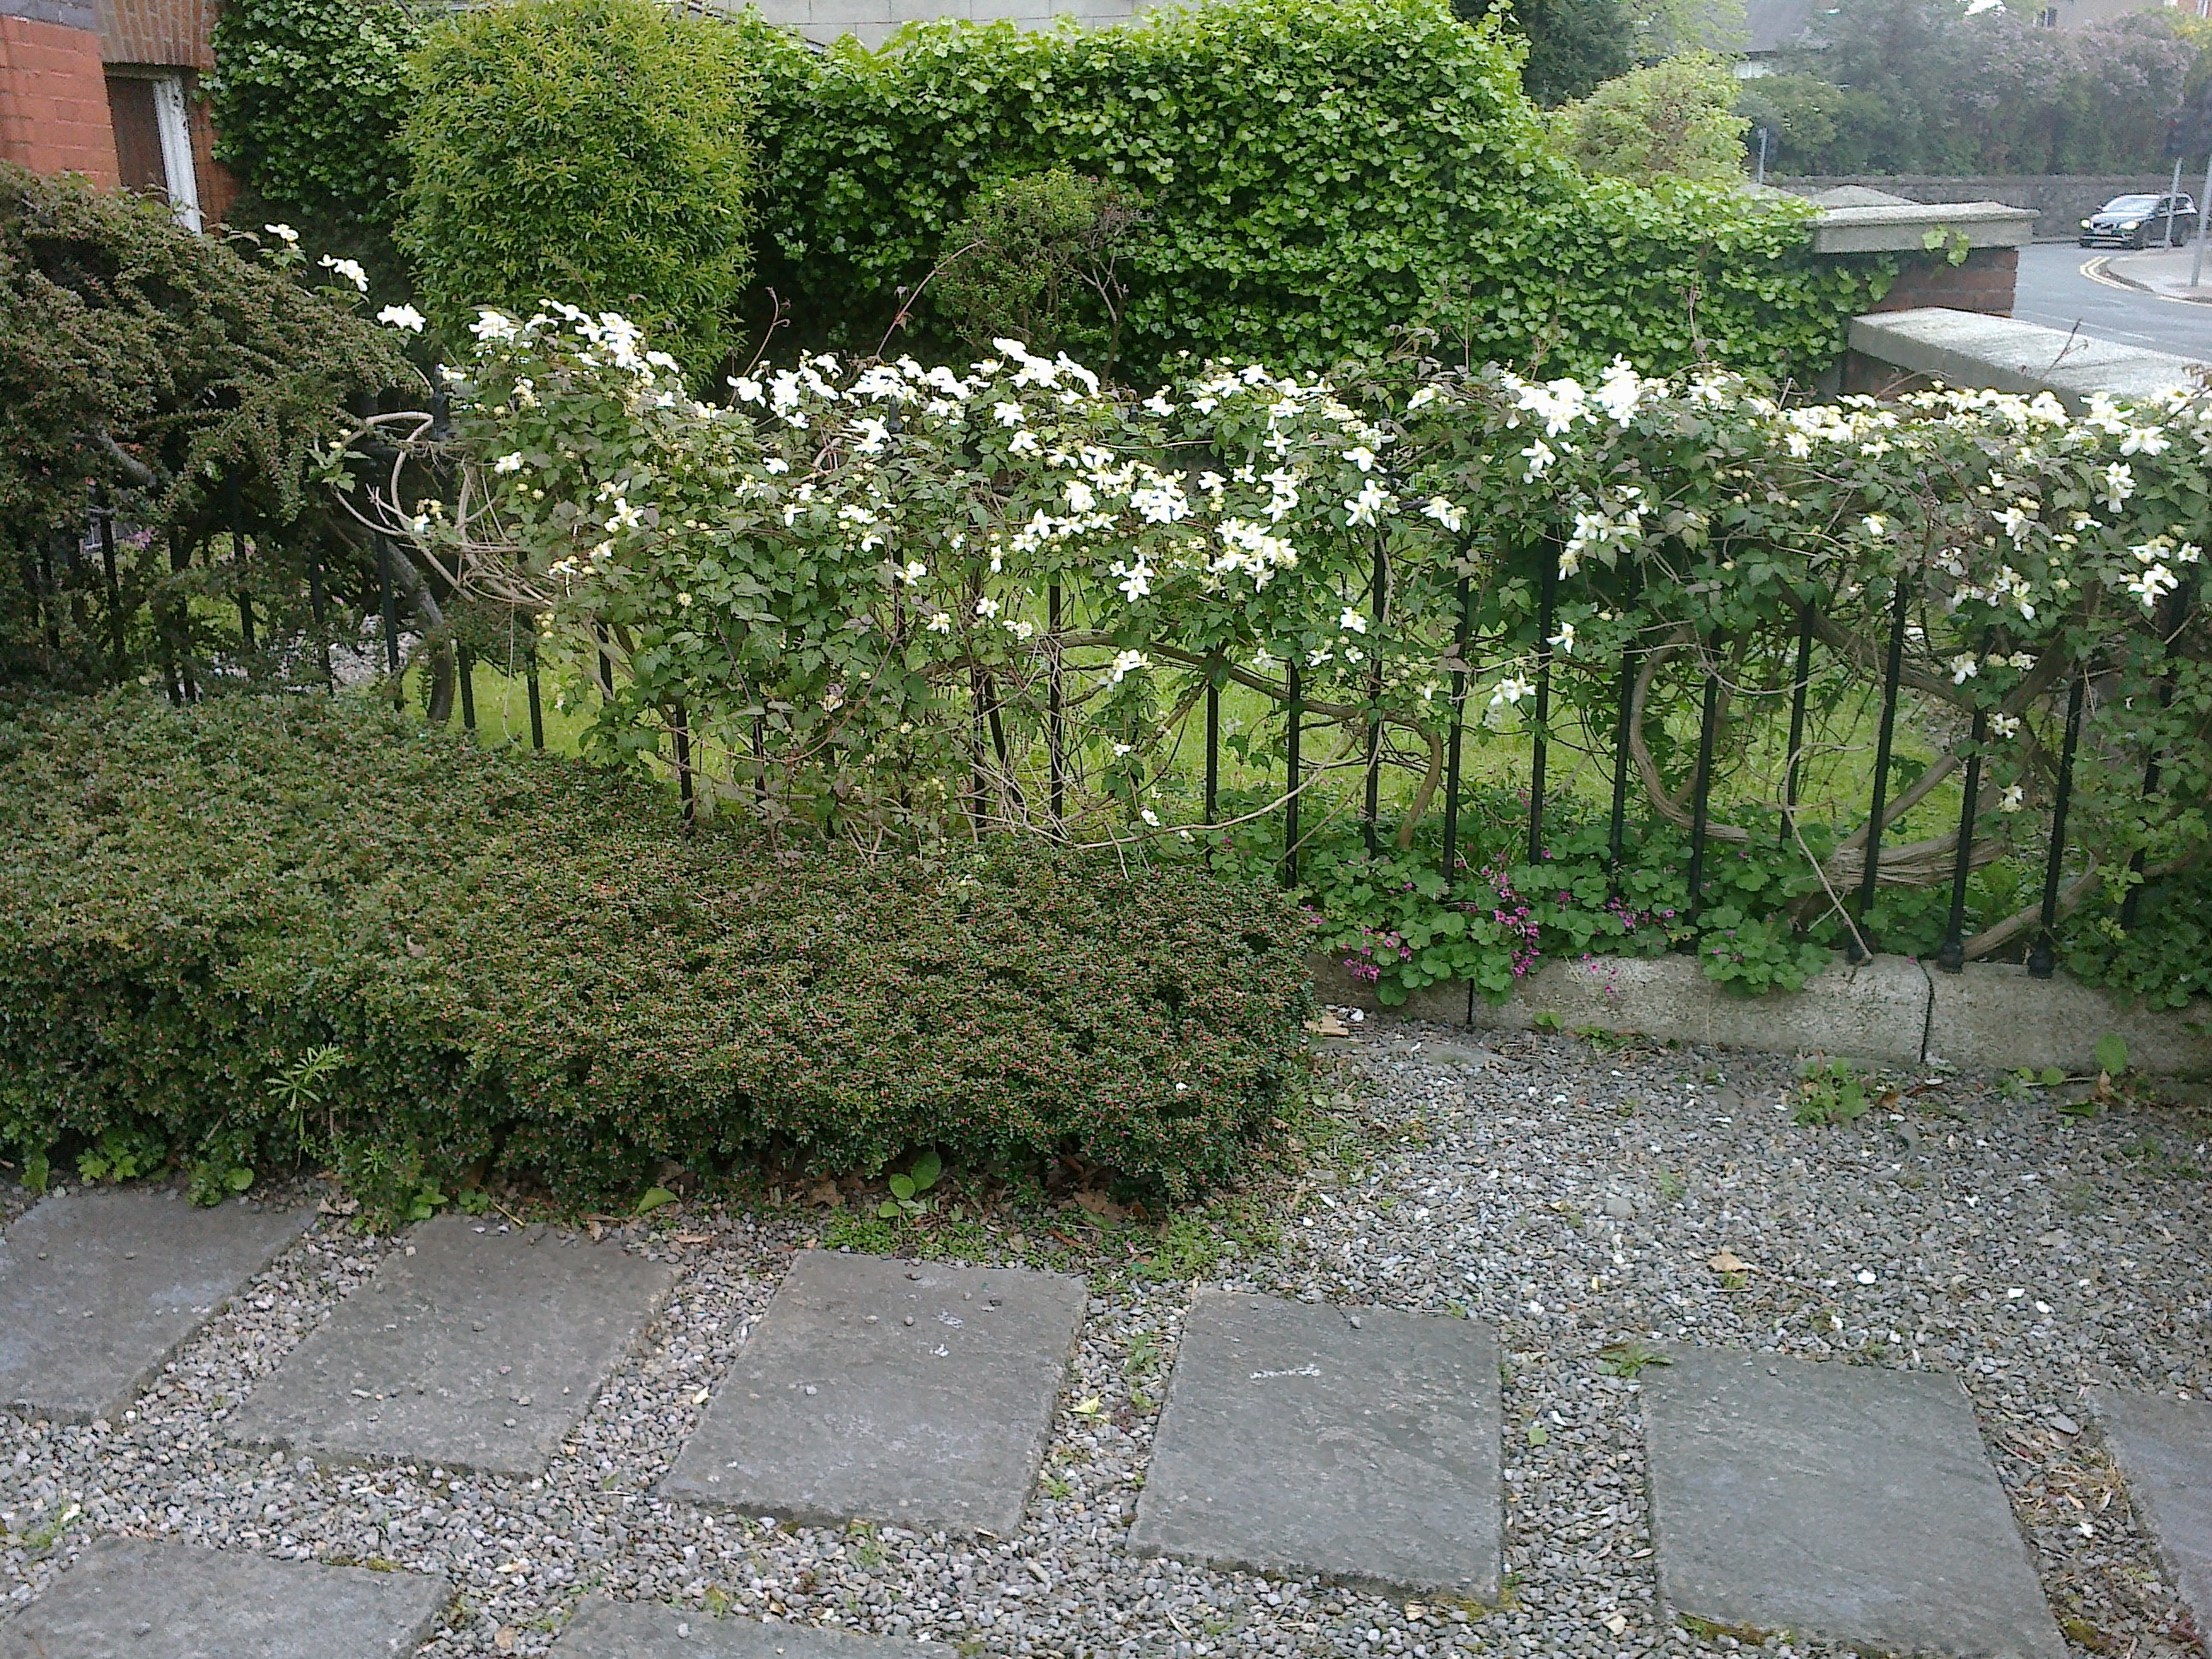 The front garden clematis on the railings